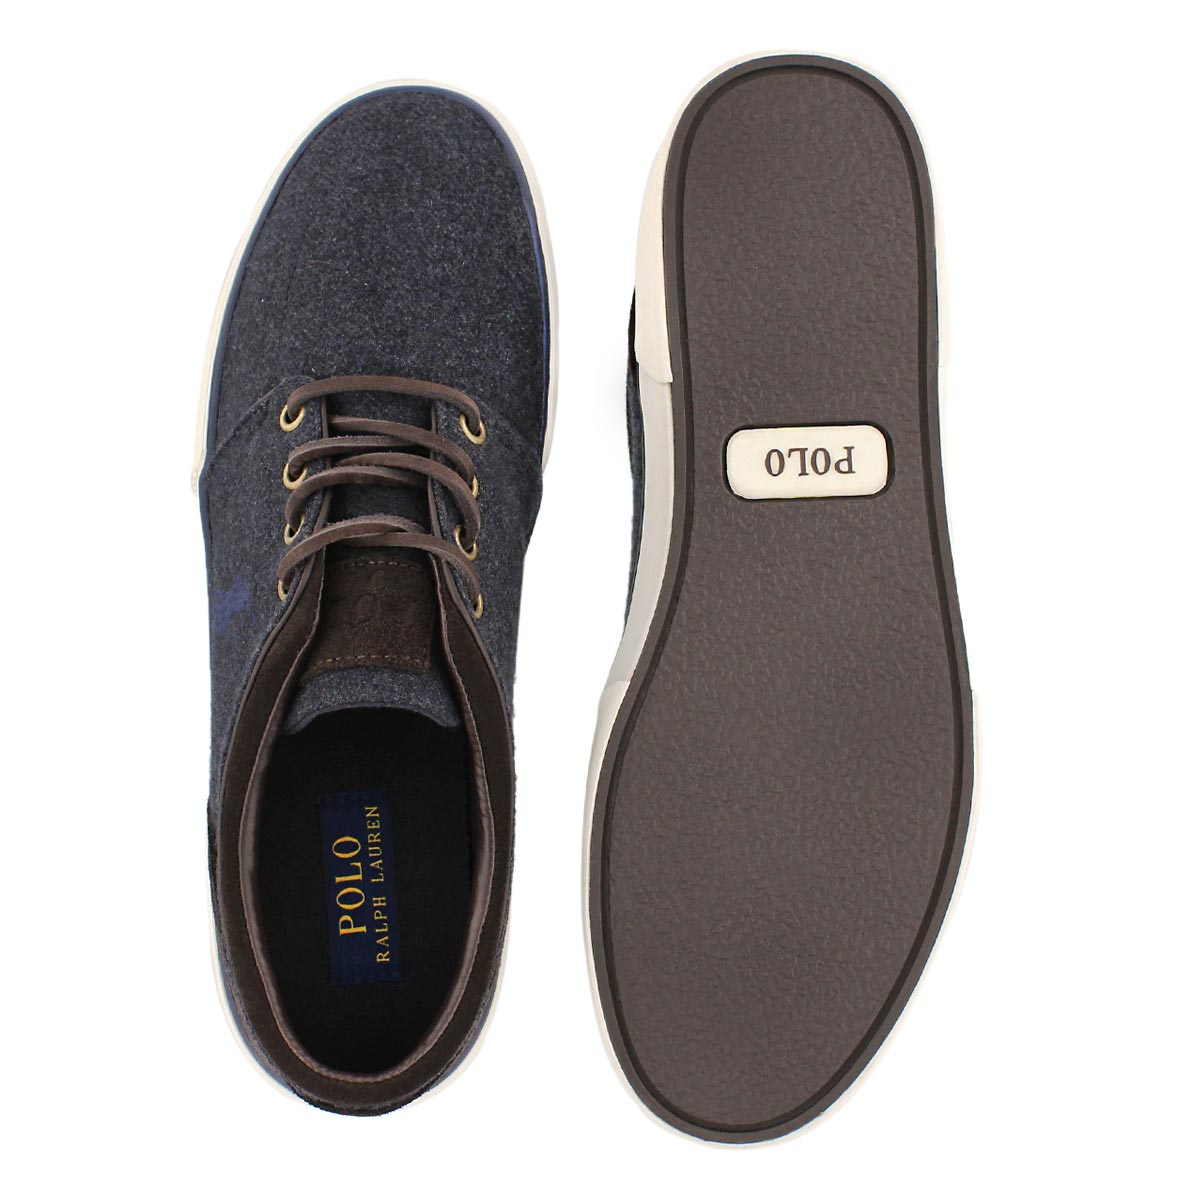 Mns Faxon Low nvy/brn lace up sneaker